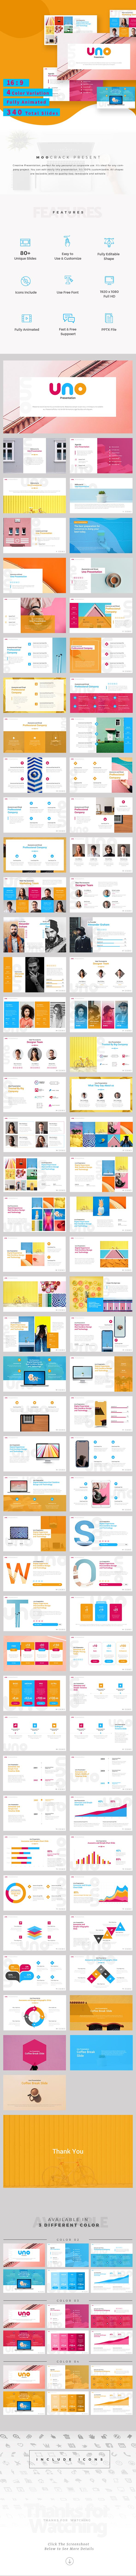 Uno Creative Powerpoint Template - Creative #PowerPoint Templates